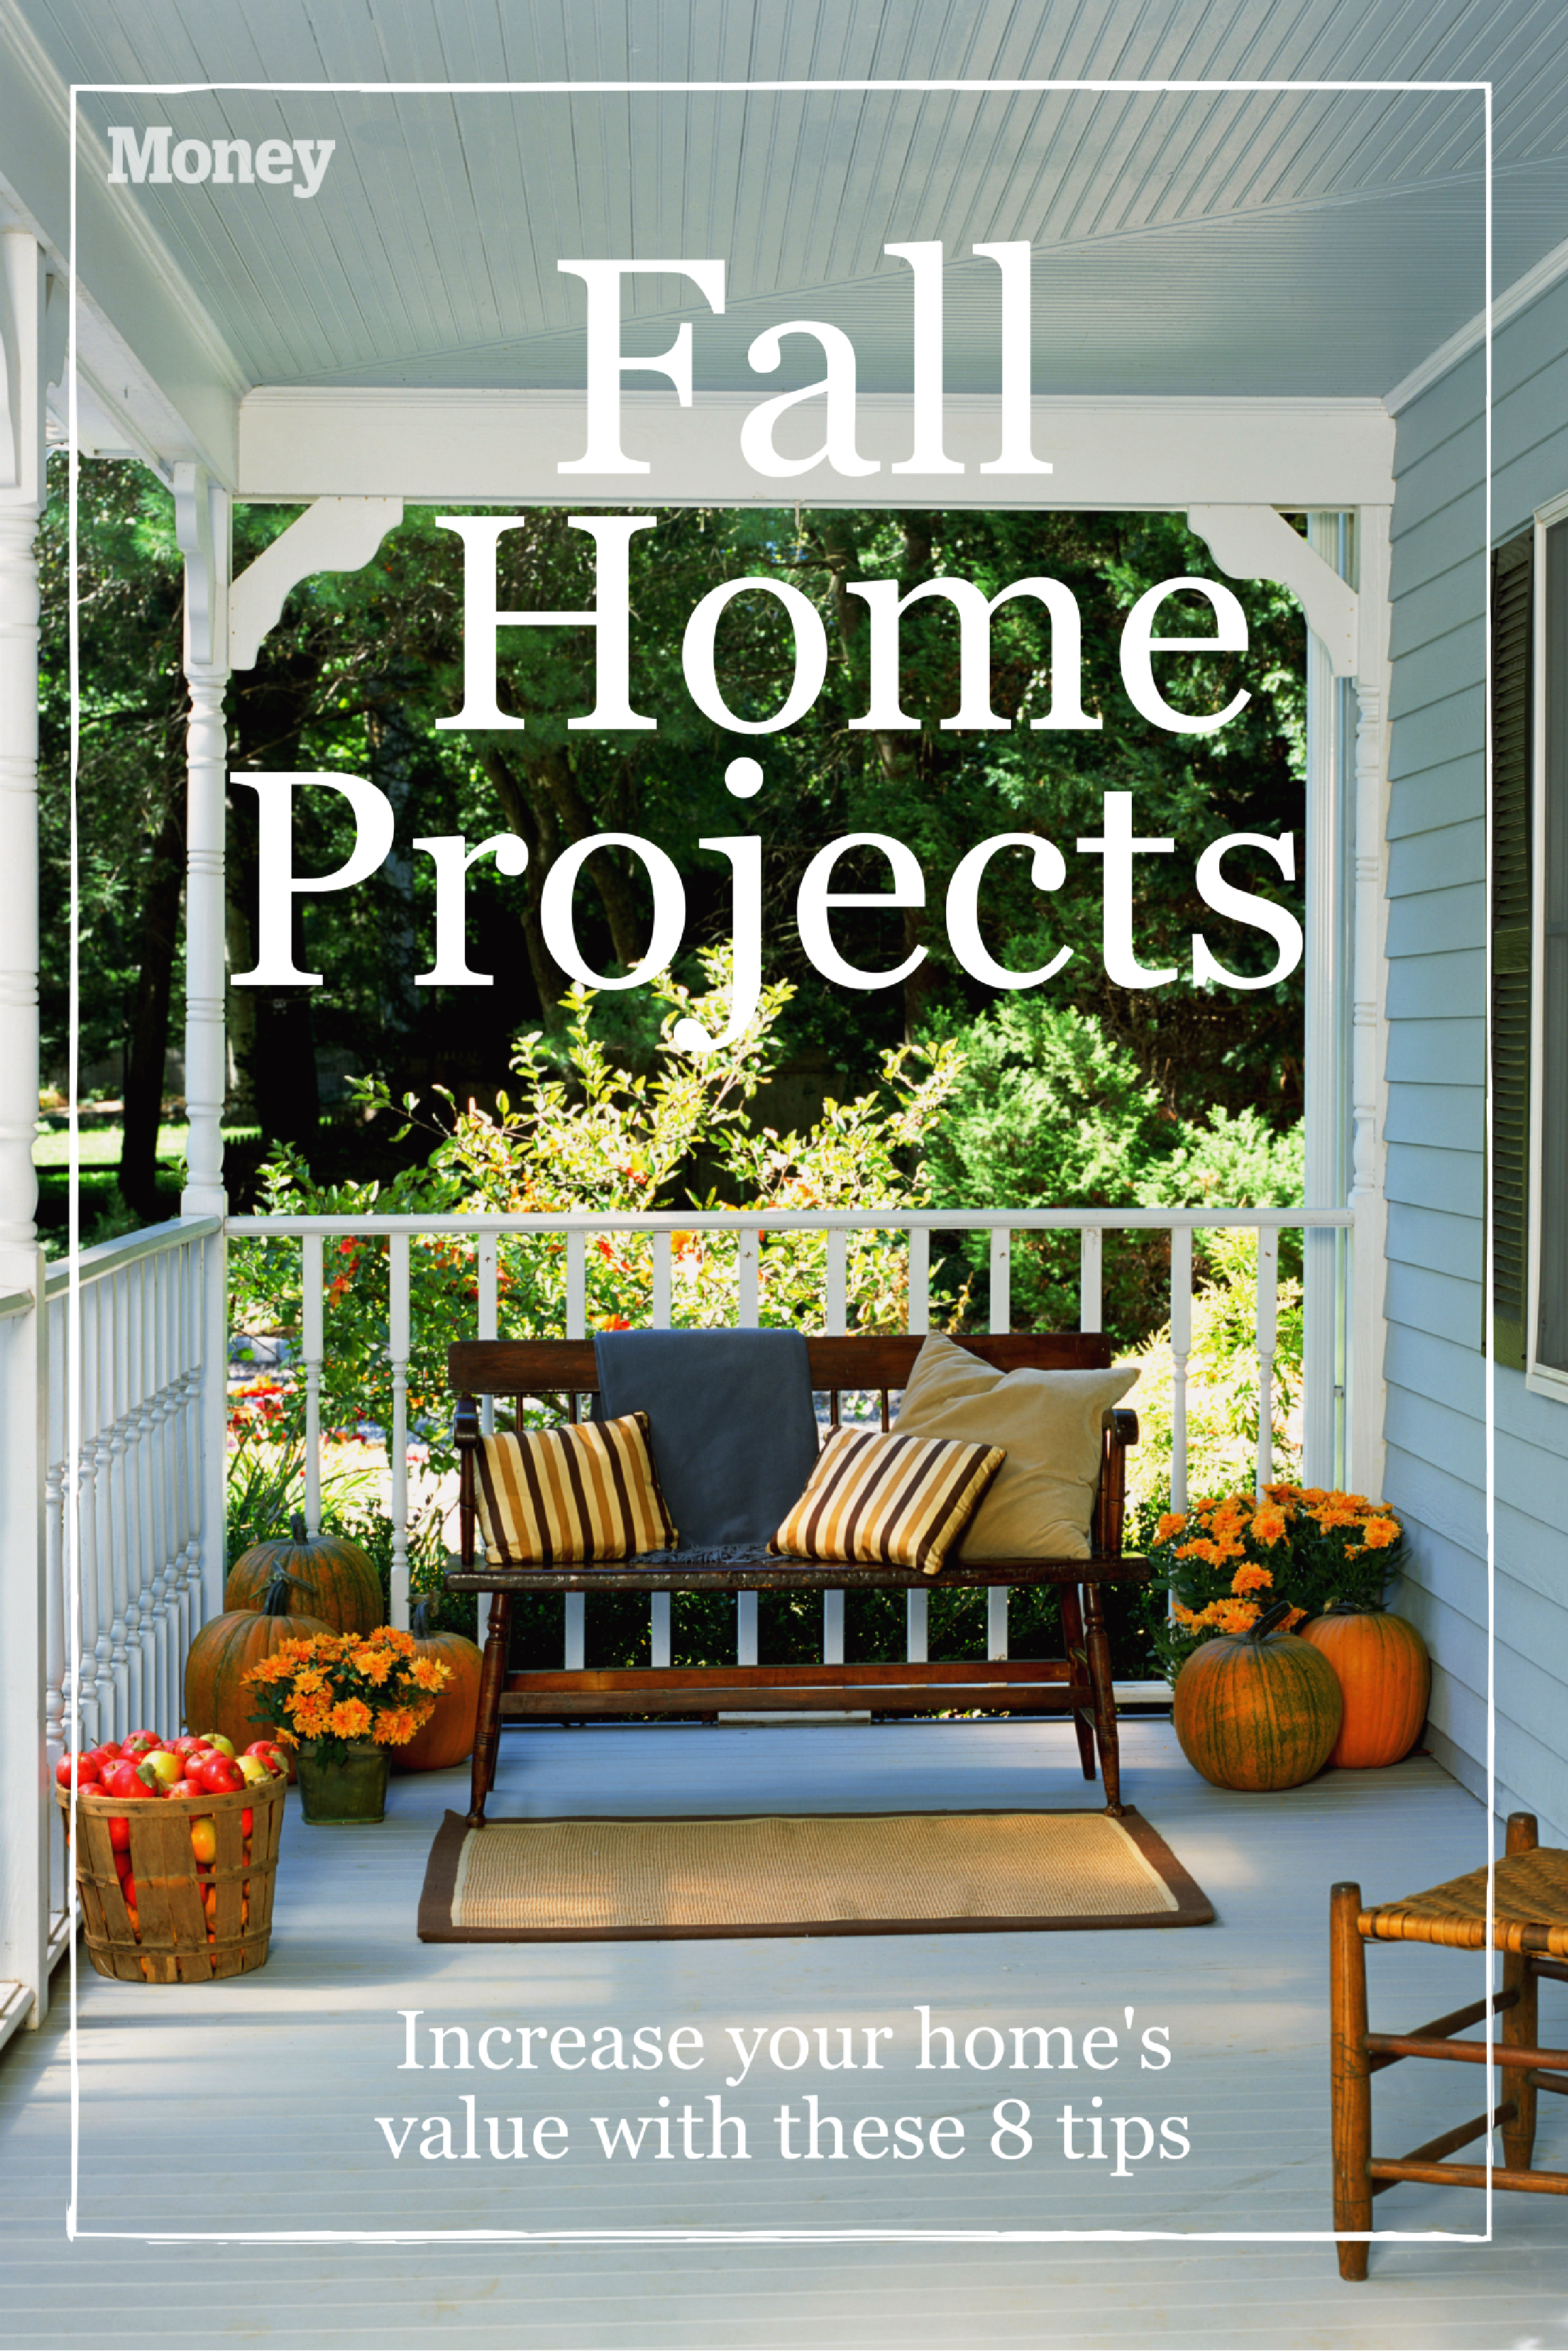 8 Home Improvement Projects For Fall That Will Increase